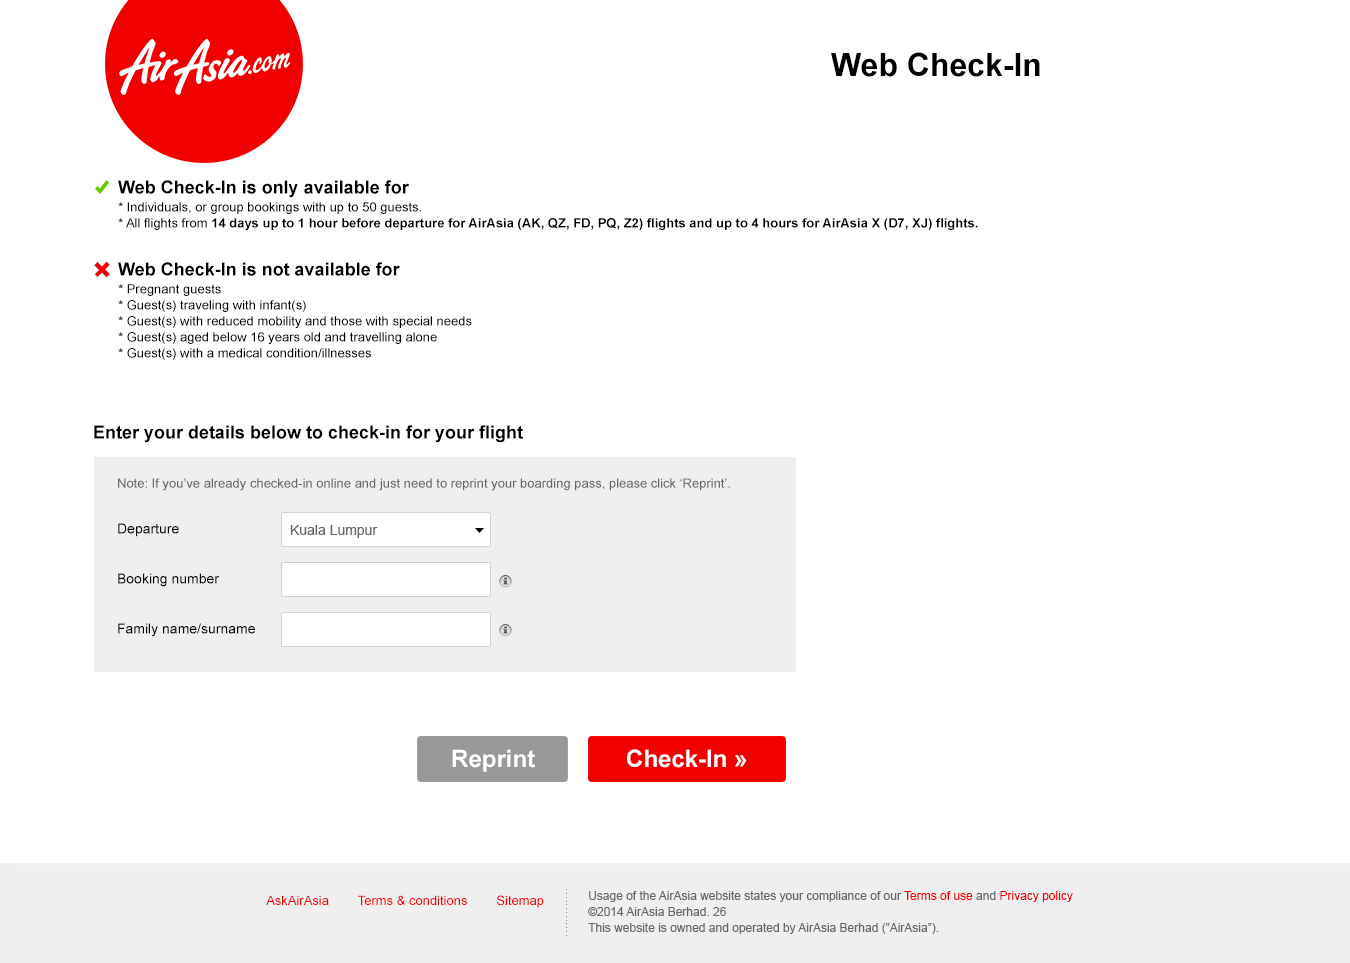 Web Check-in main screen